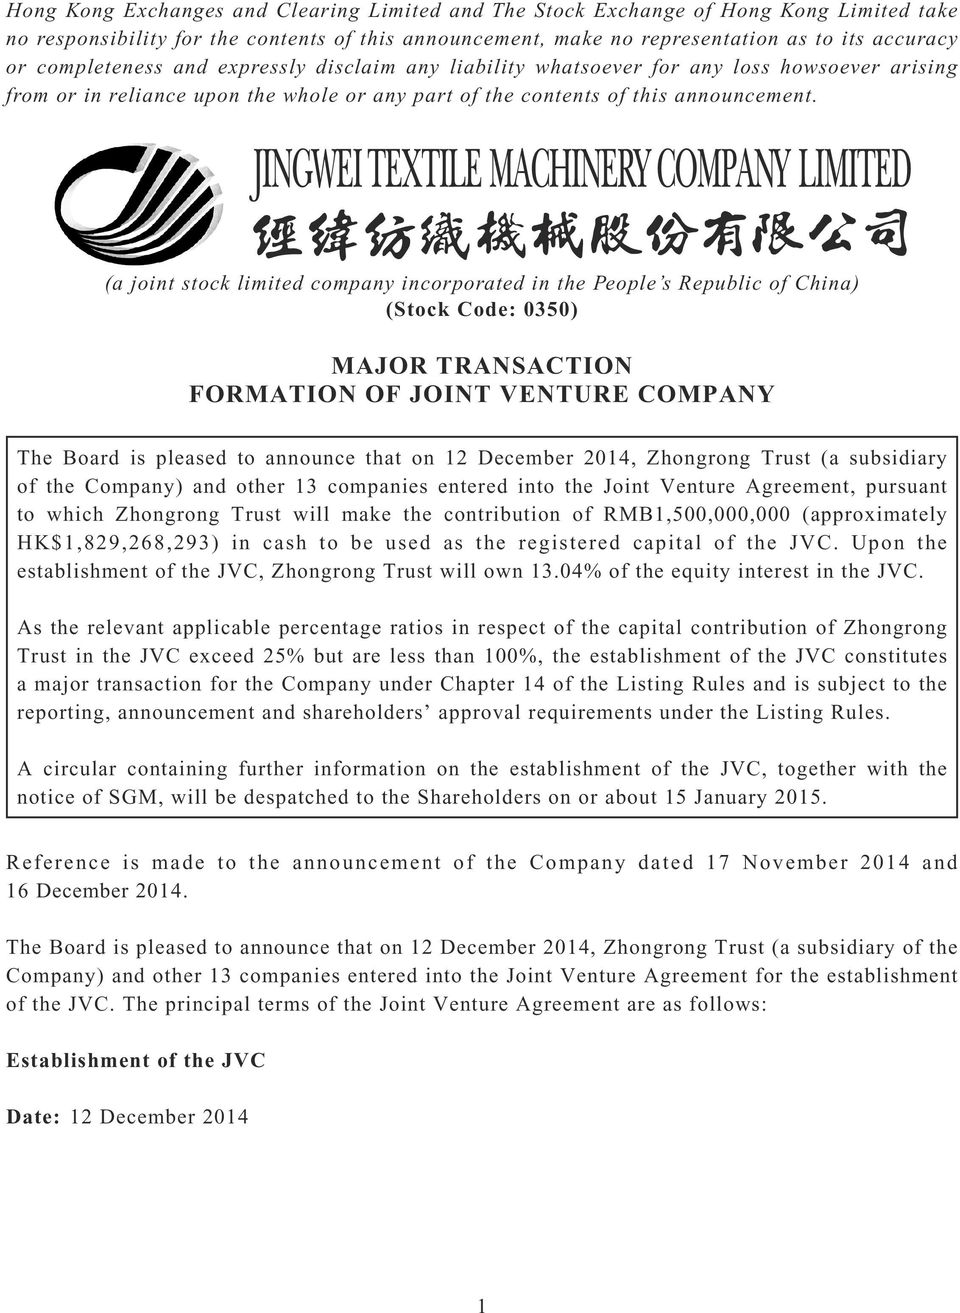 (a joint stock limited company incorporated in the People s Republic of China) (Stock Code: 0350) MAJOR TRANSACTION FORMATION OF JOINT VENTURE COMPANY The Board is pleased to announce that on 12